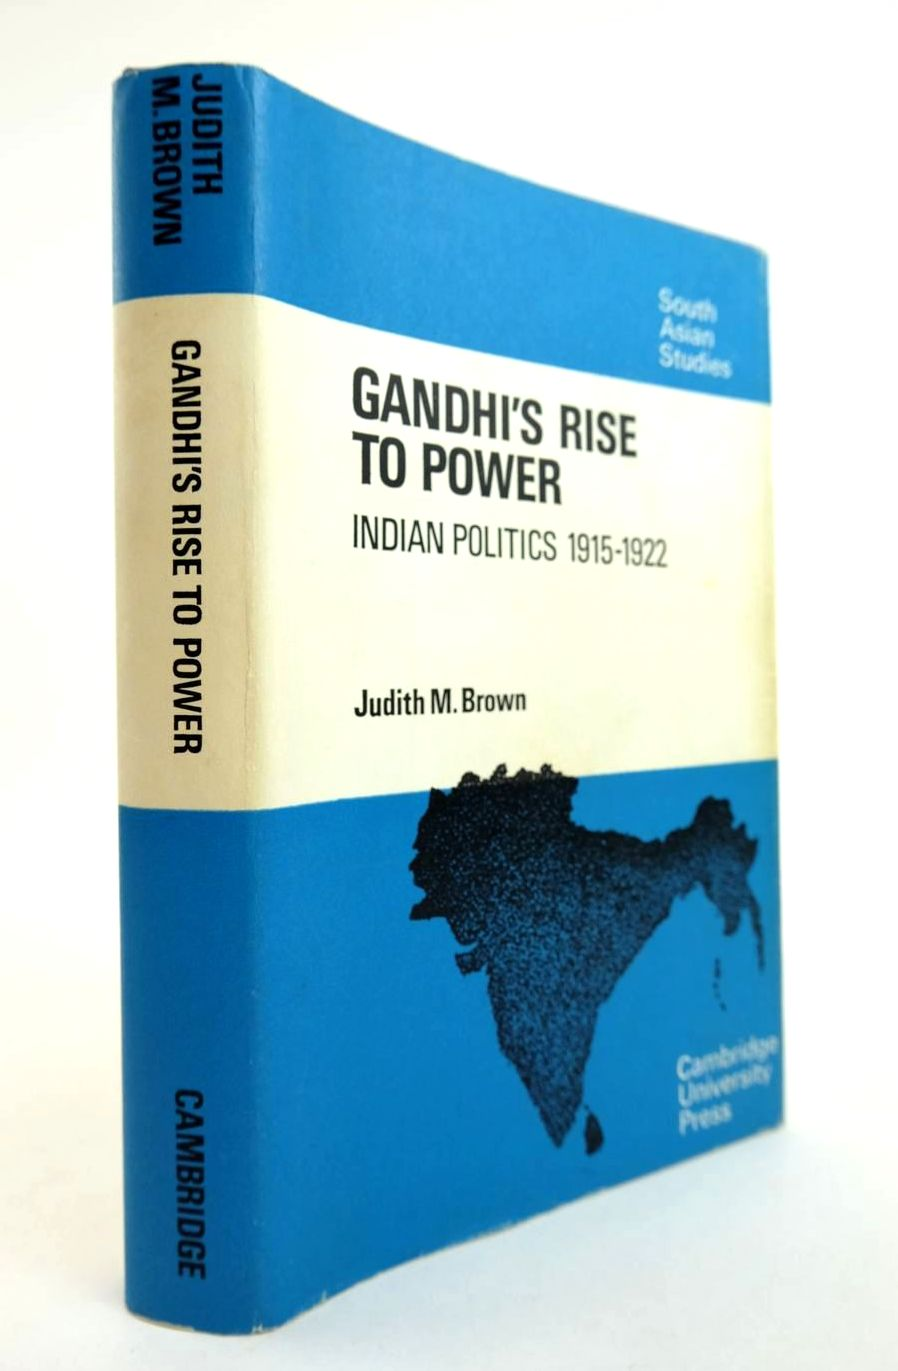 Photo of GANDHI'S RISE TO POWER written by Brown, Judith M. published by Cambridge University Press (STOCK CODE: 2132340)  for sale by Stella & Rose's Books